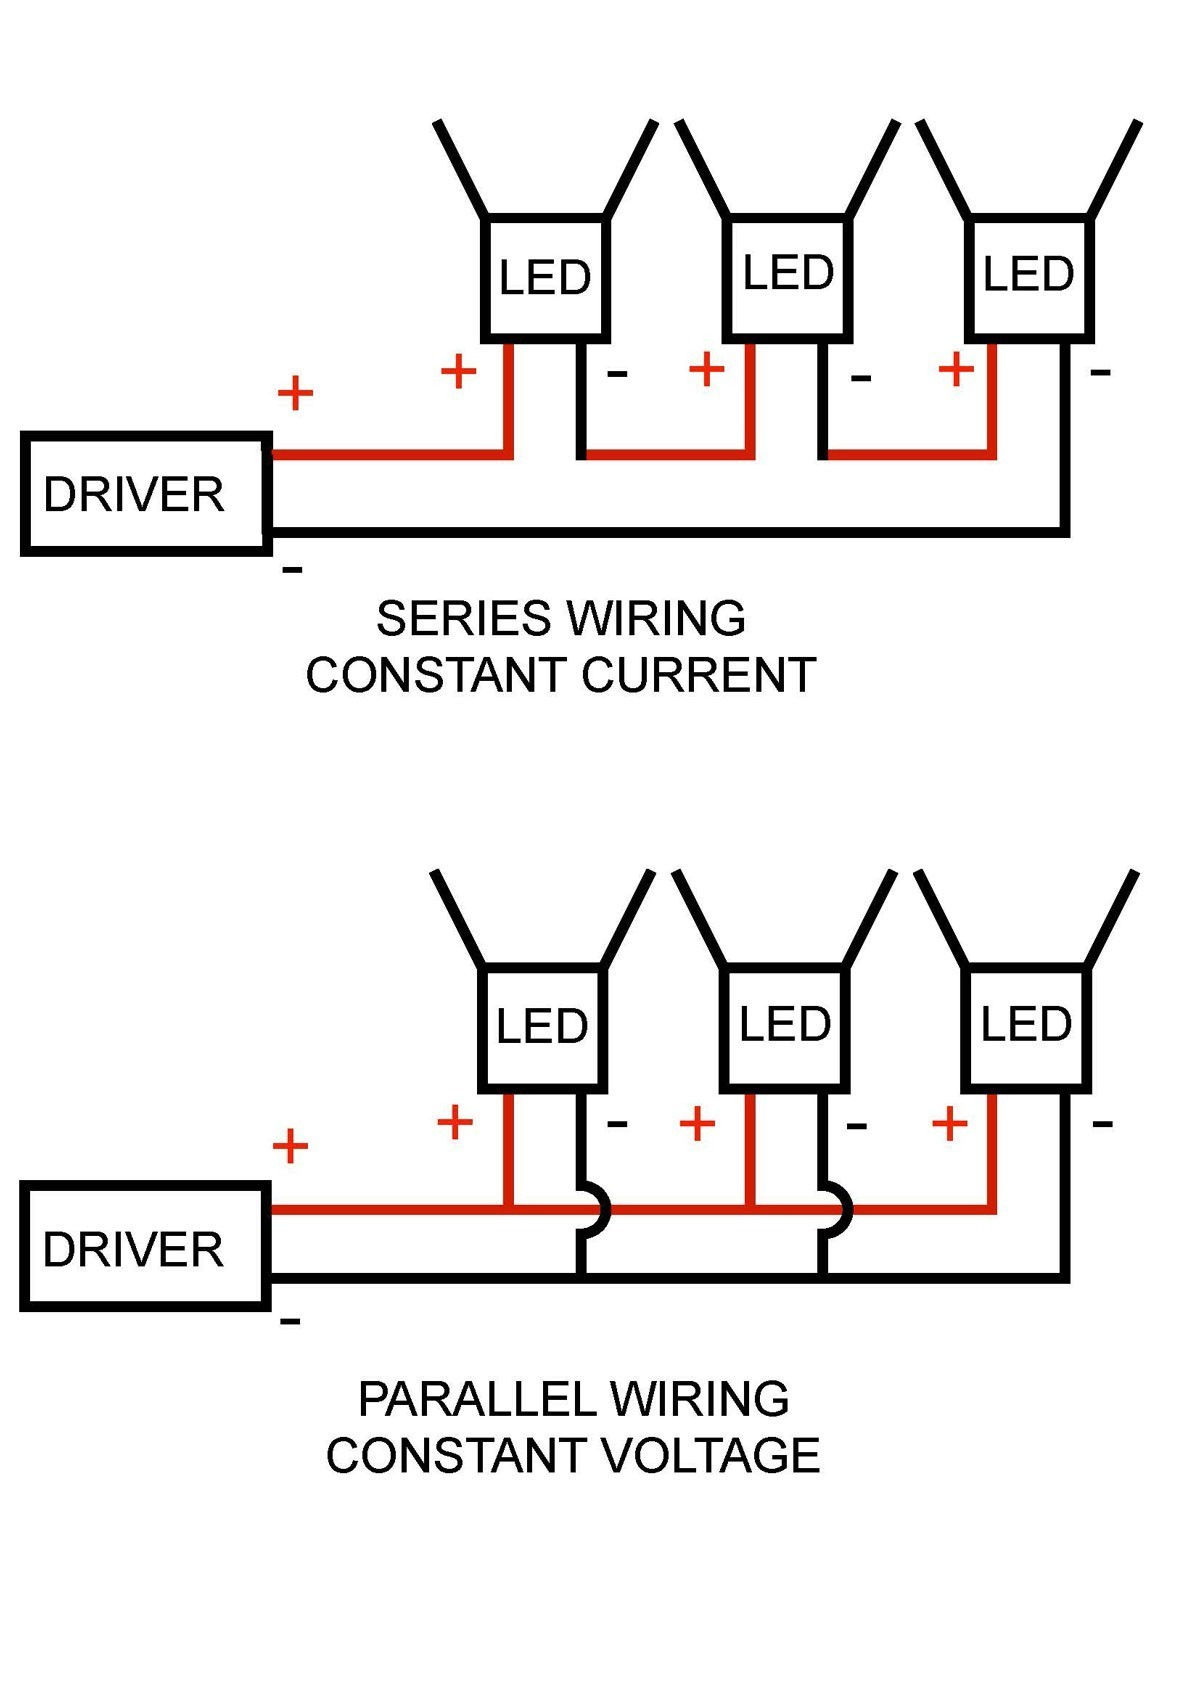 Wiring Diagrams For 6 Recessed Lighting In Series Fresh Wiring Diagram For Multiple Pot Lights Best Recessed Lighting How To